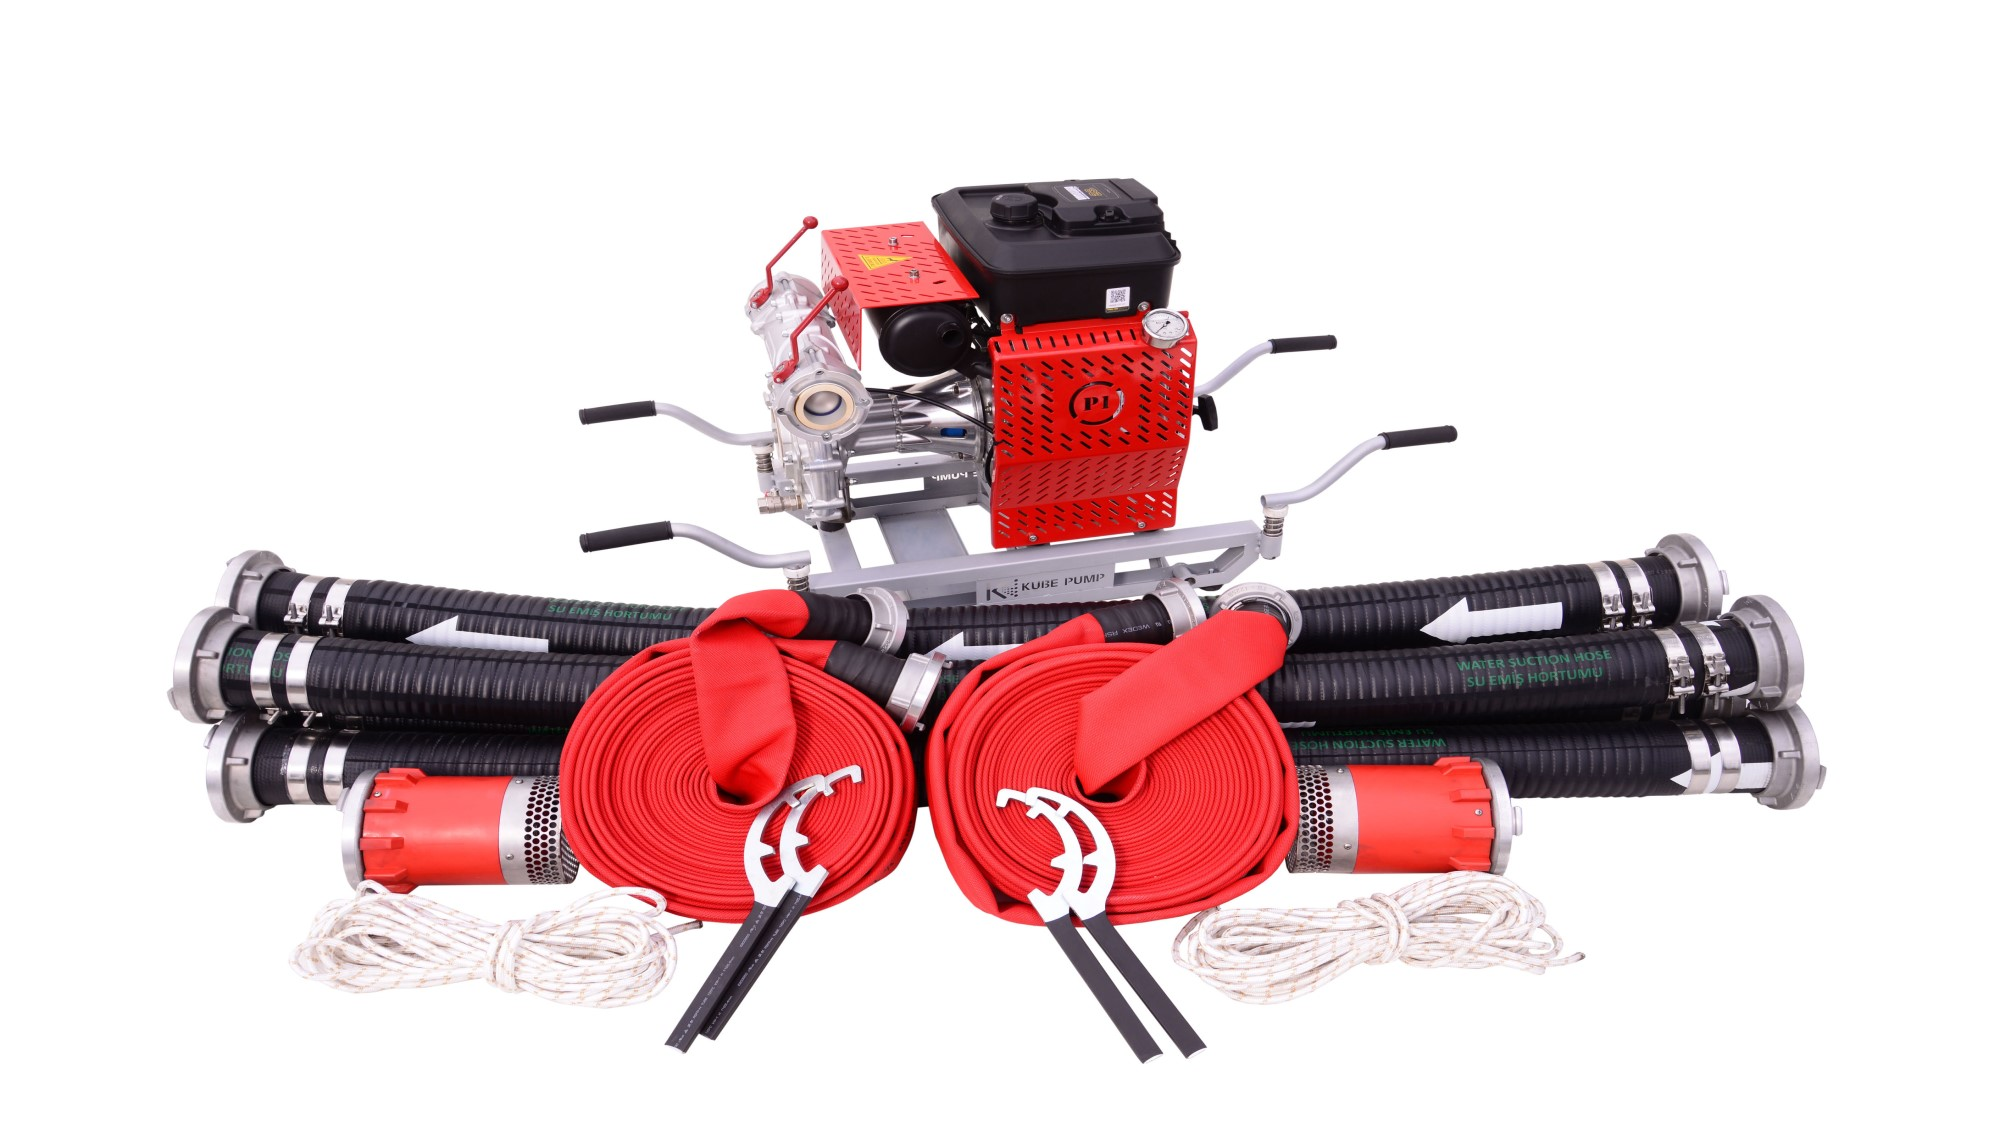 NEW PRODUCT GROUP- PORTABLE FIRE PUMPS